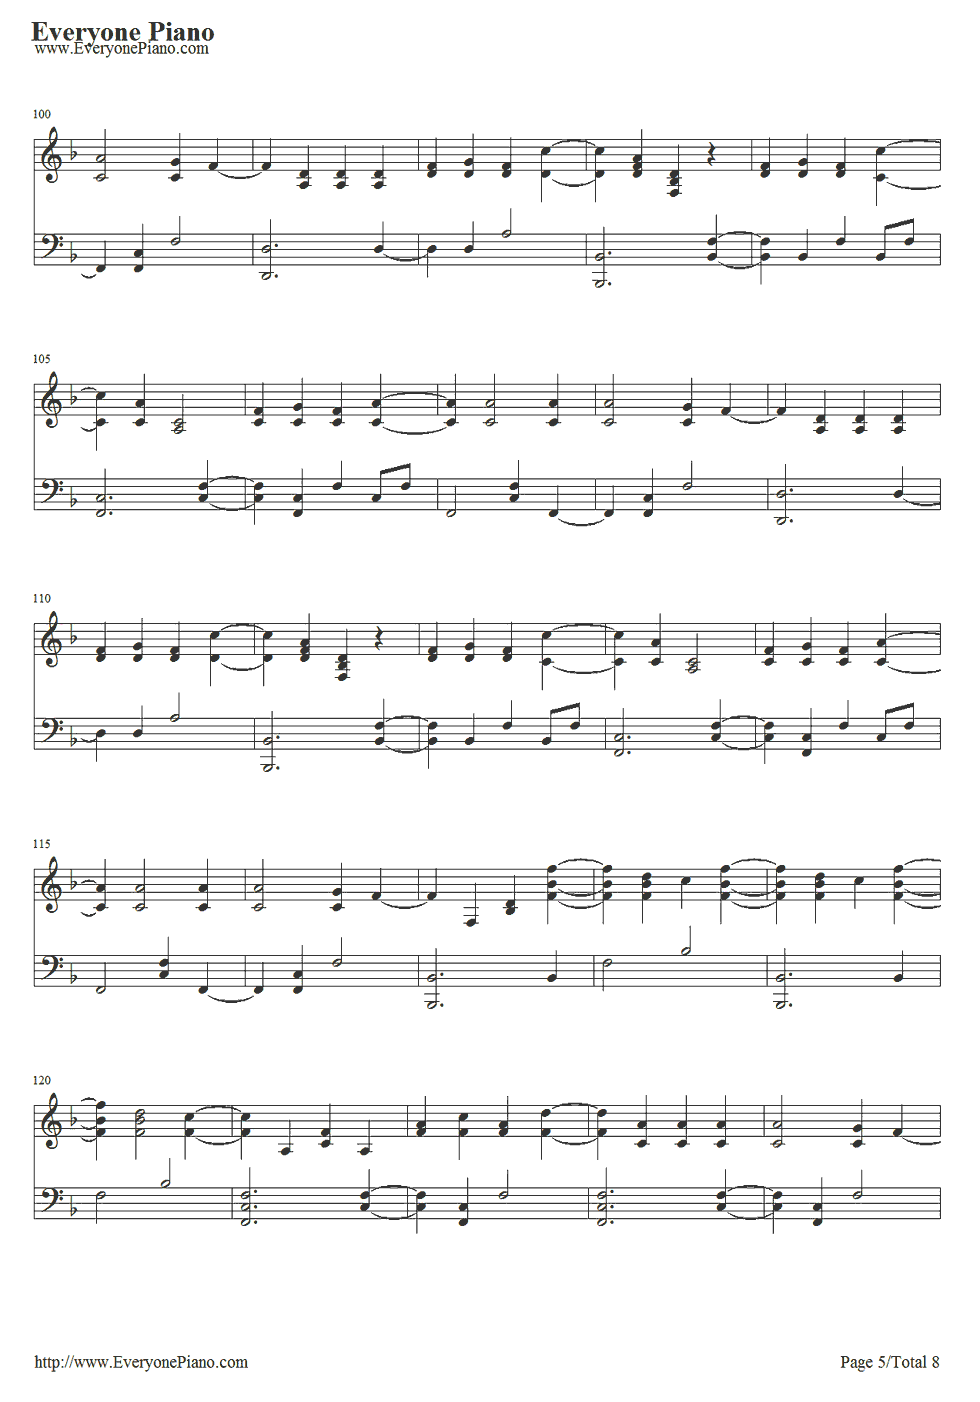 Coldplay the scientist piano sheet music learn to play today the coldplay the scientist piano sheet music learn to play today the scientist coldplay stave preview hexwebz Image collections